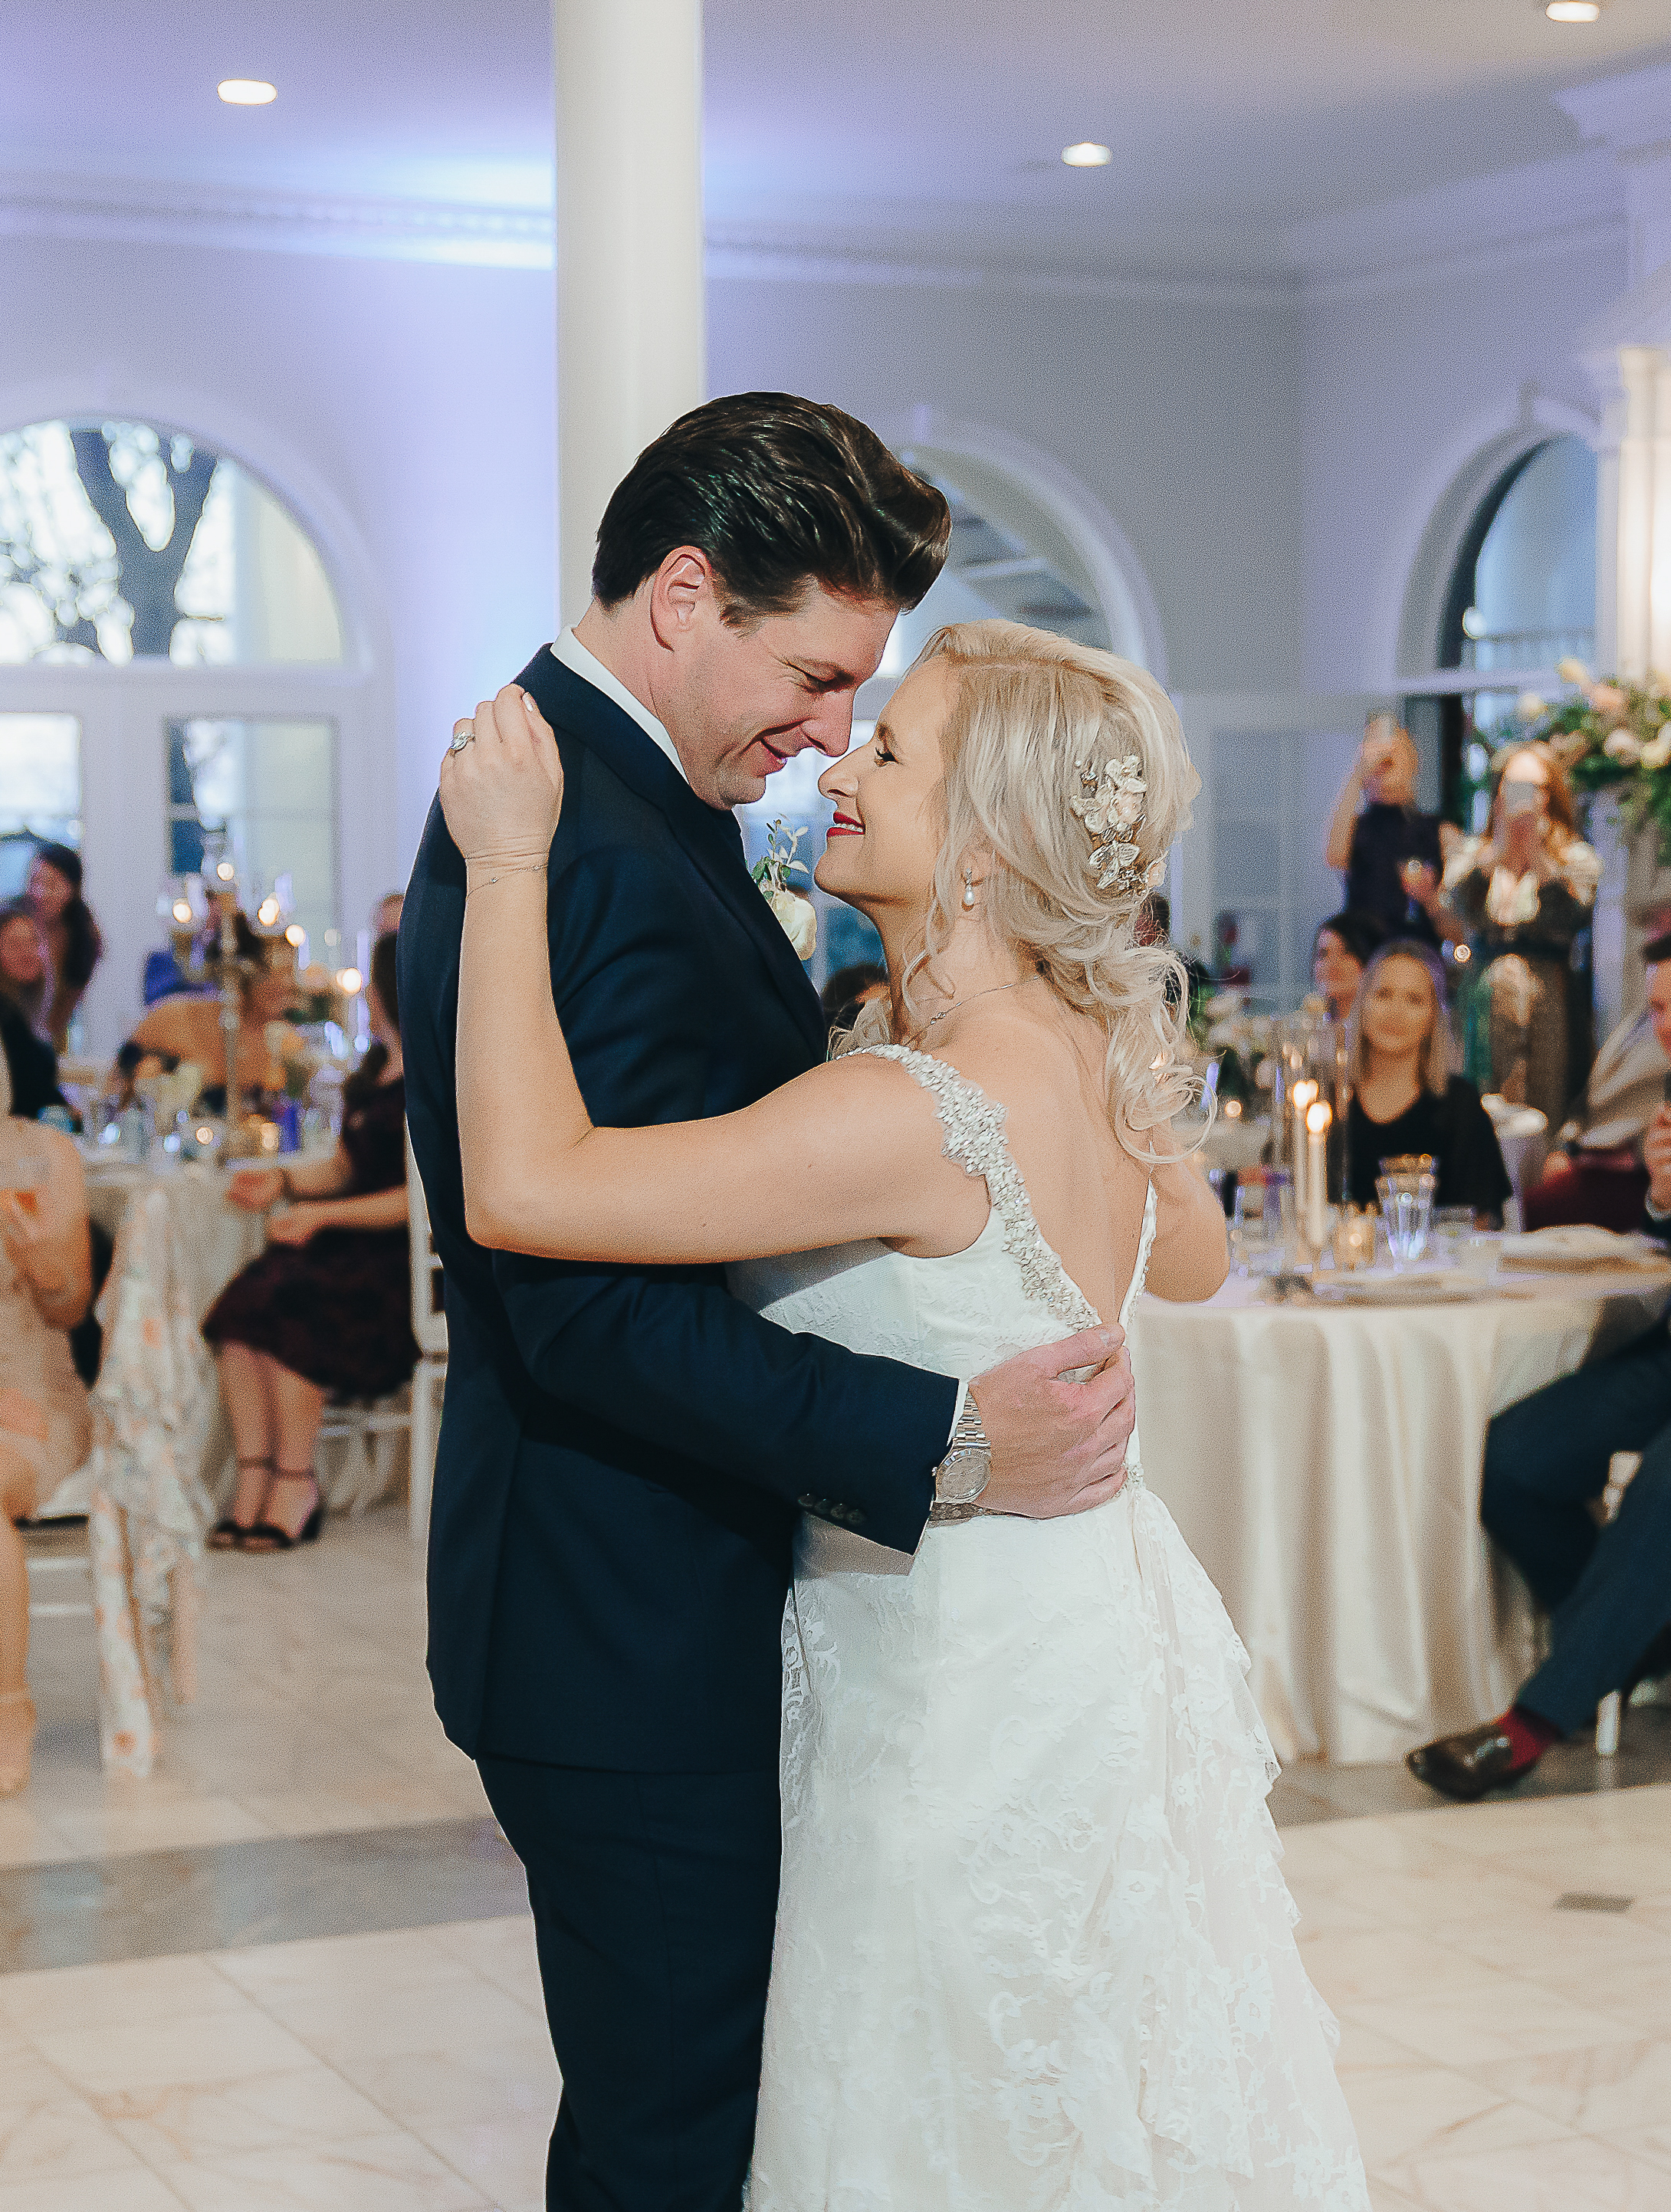 Bride and Groom having their first dance in the Mansion at ColoVista.